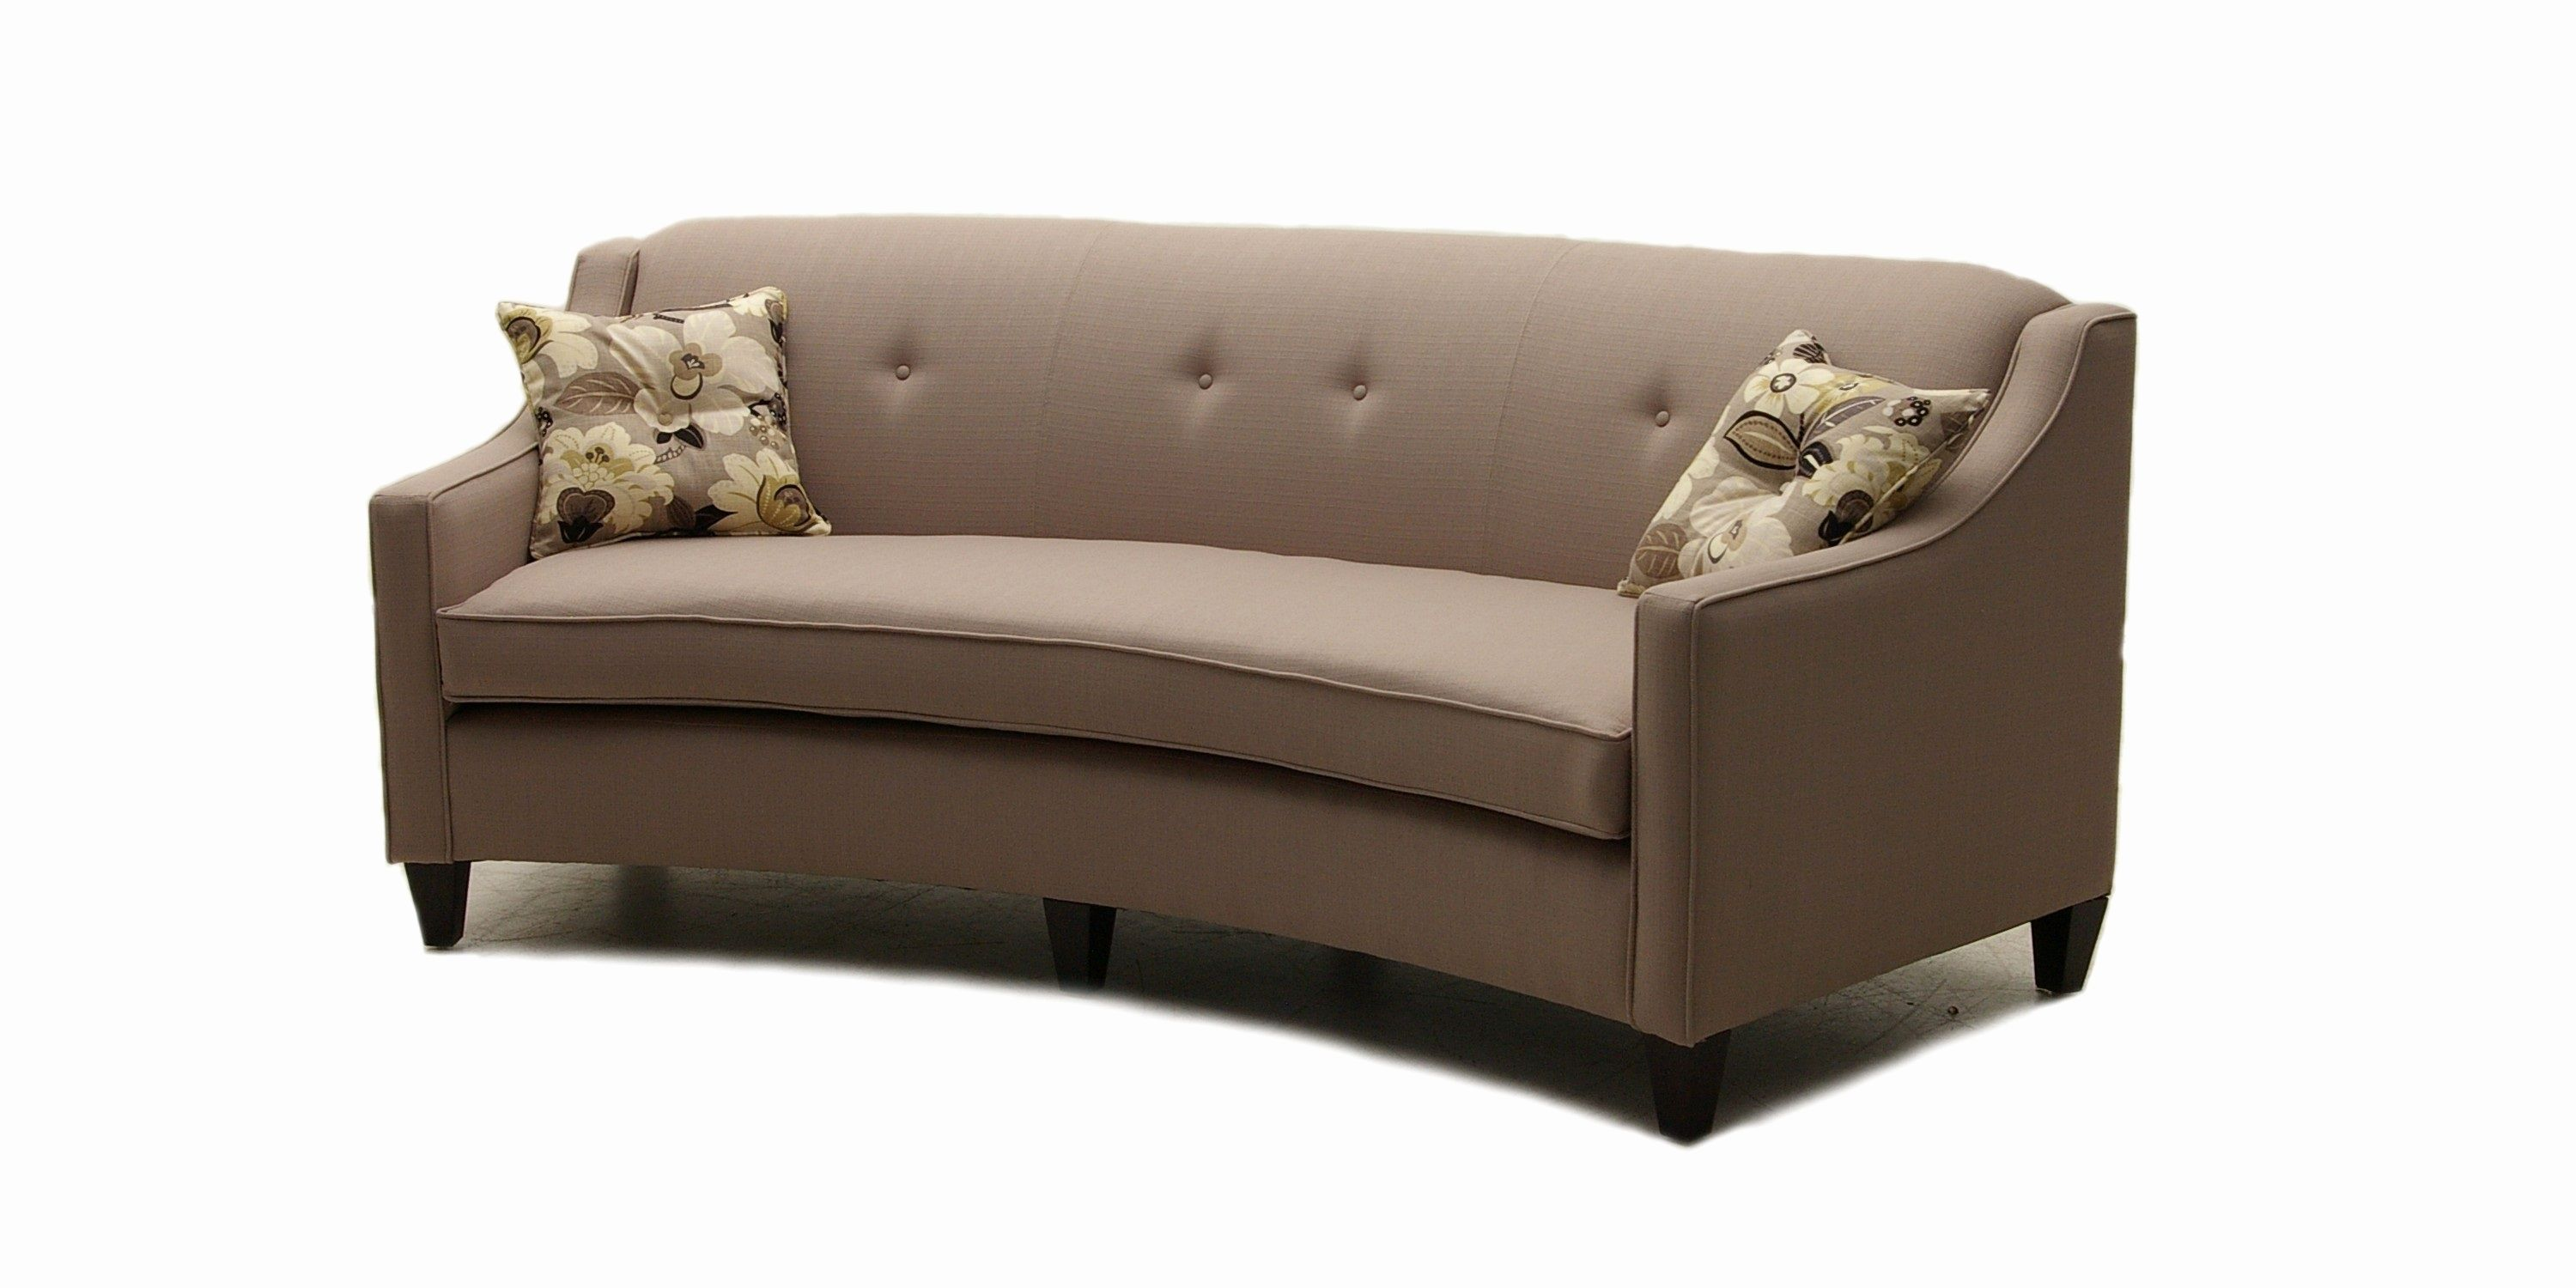 Etonnant Best Of Curved Contemporary Sofa Art Curved Contemporary Sofa Fresh Fresh  Small Curved Sofa 57 On Contemporary Sofa Inspiration With